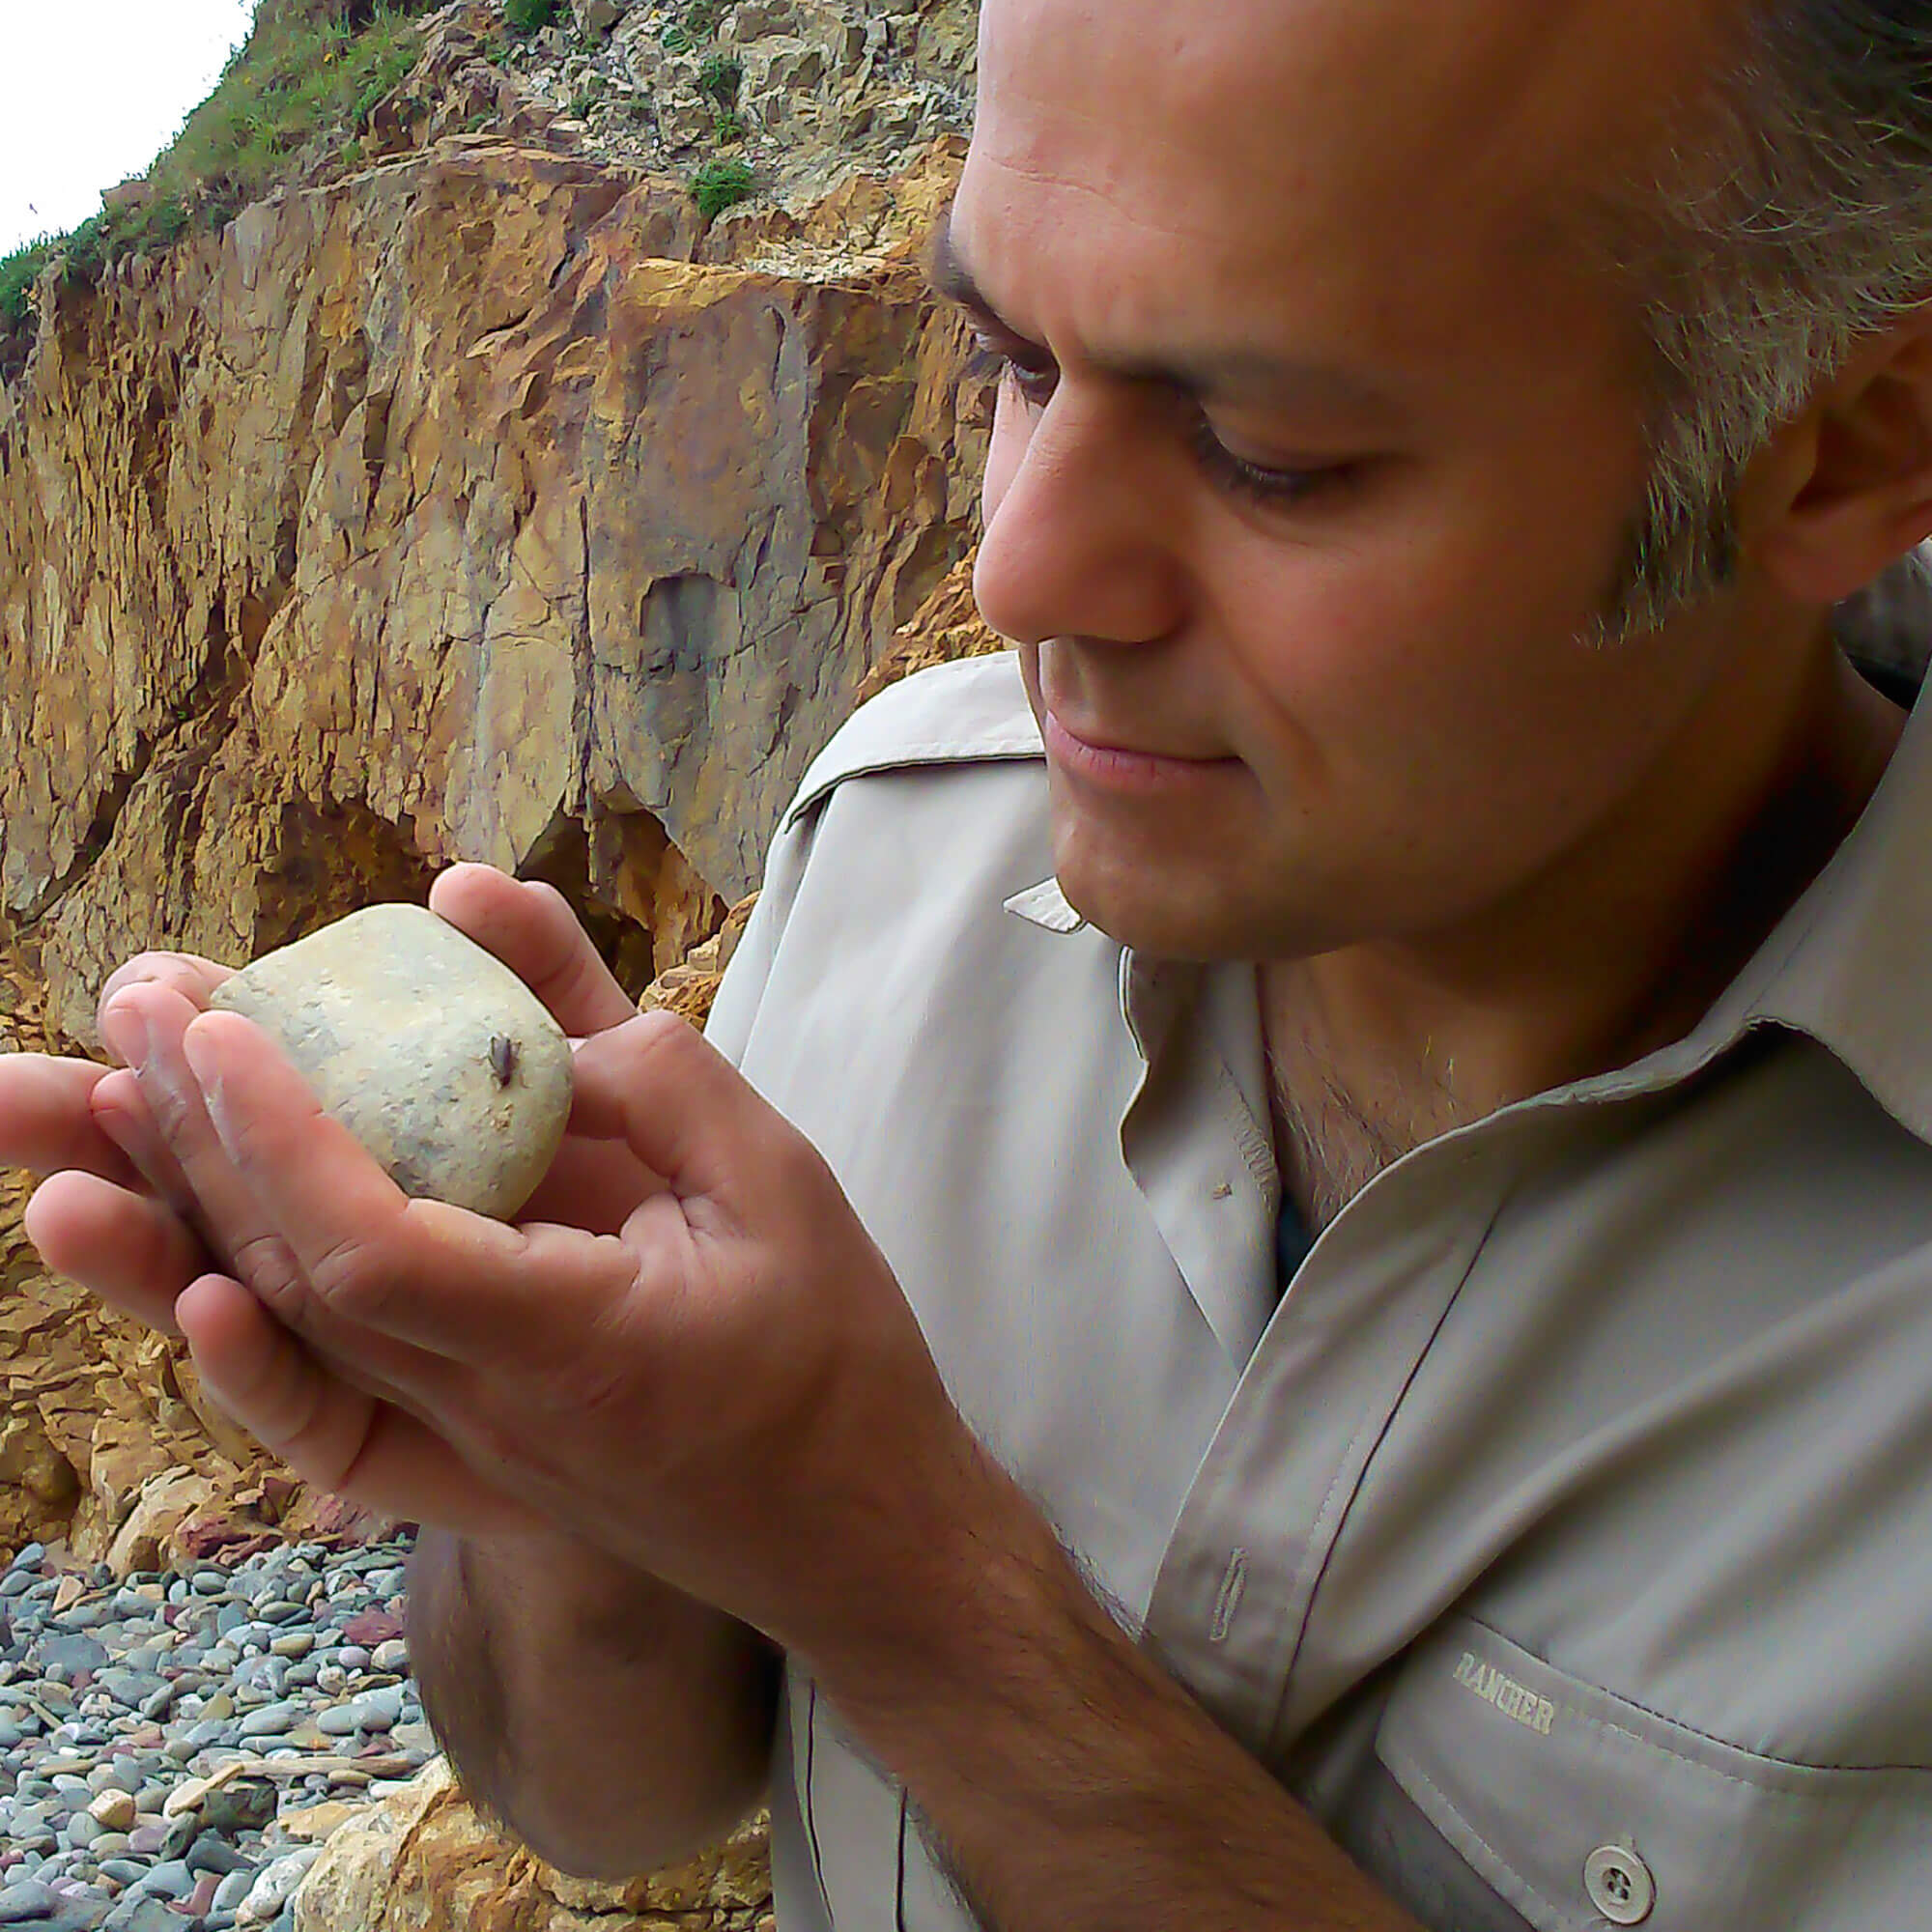 Karim Vahed observing a scaly cricket on a stone he's holding